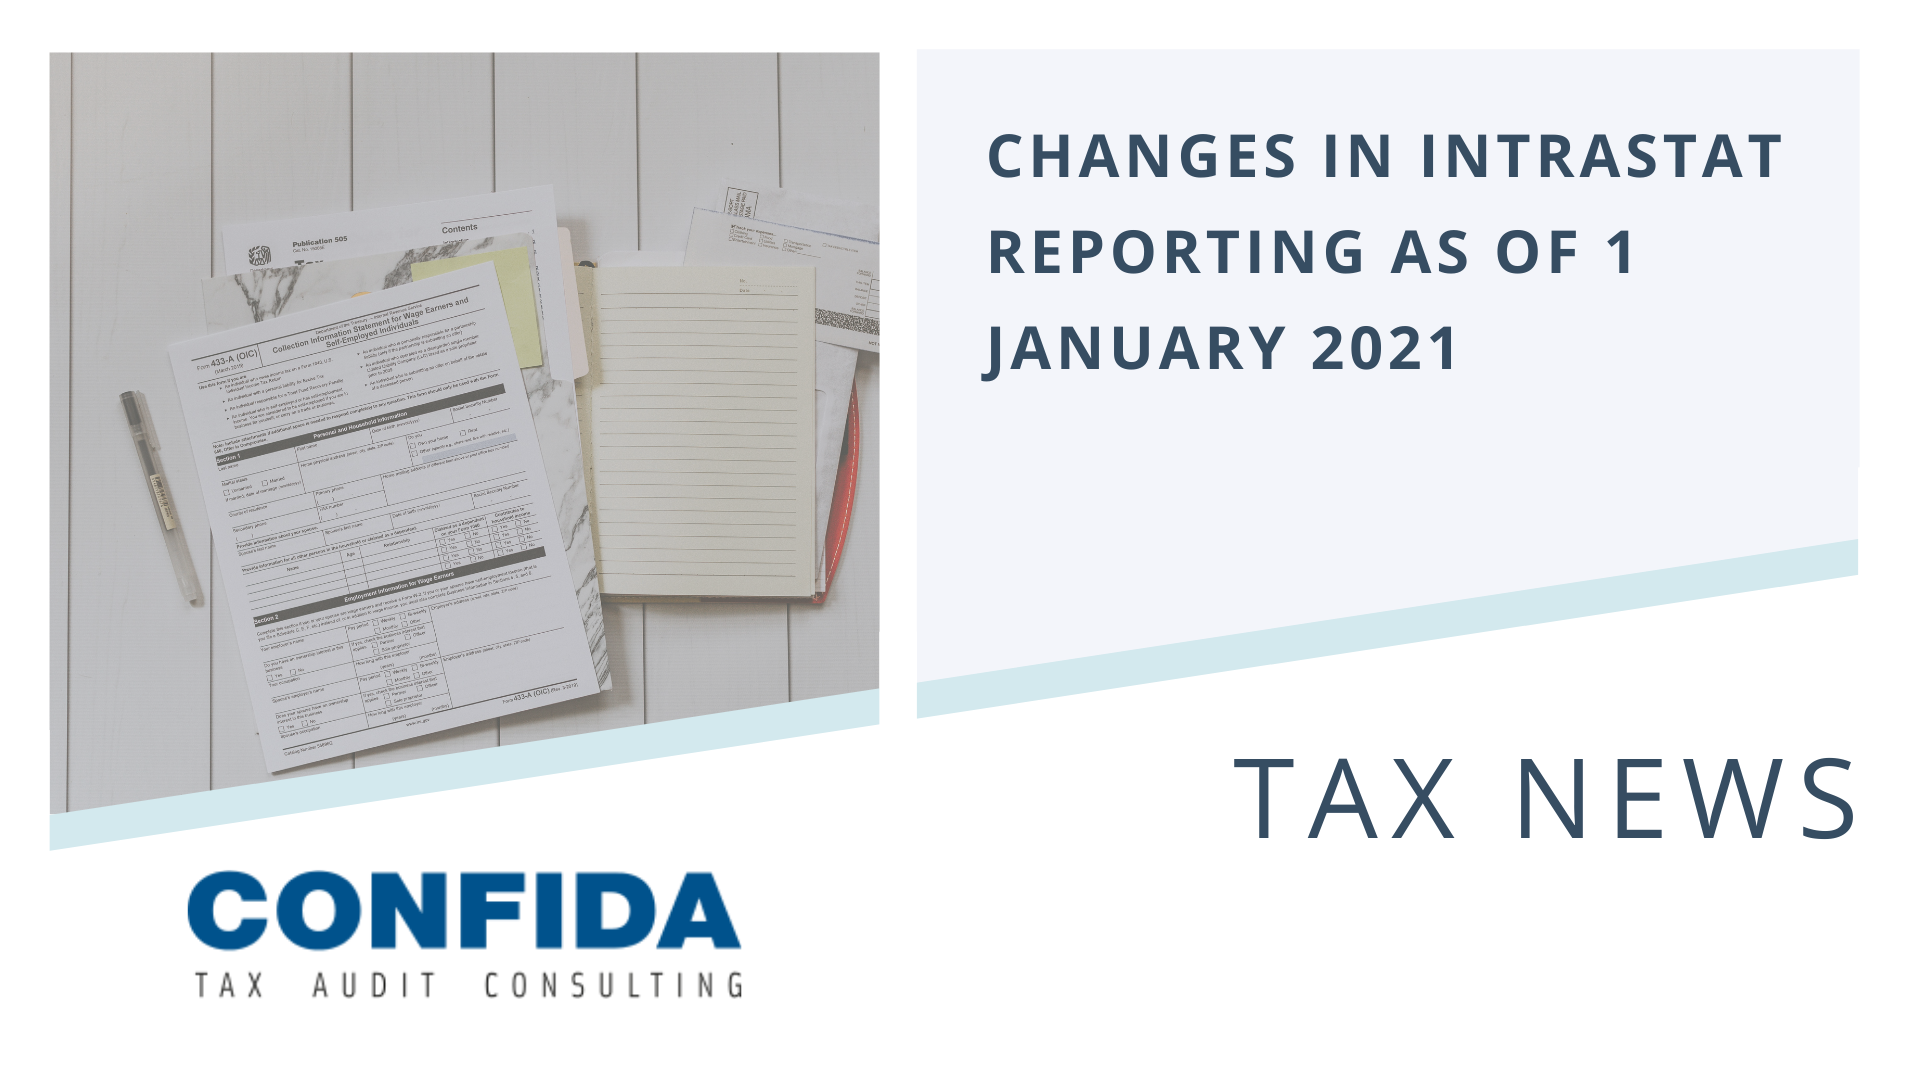 Changes in INTRASTAT reporting as of 1 January 2021